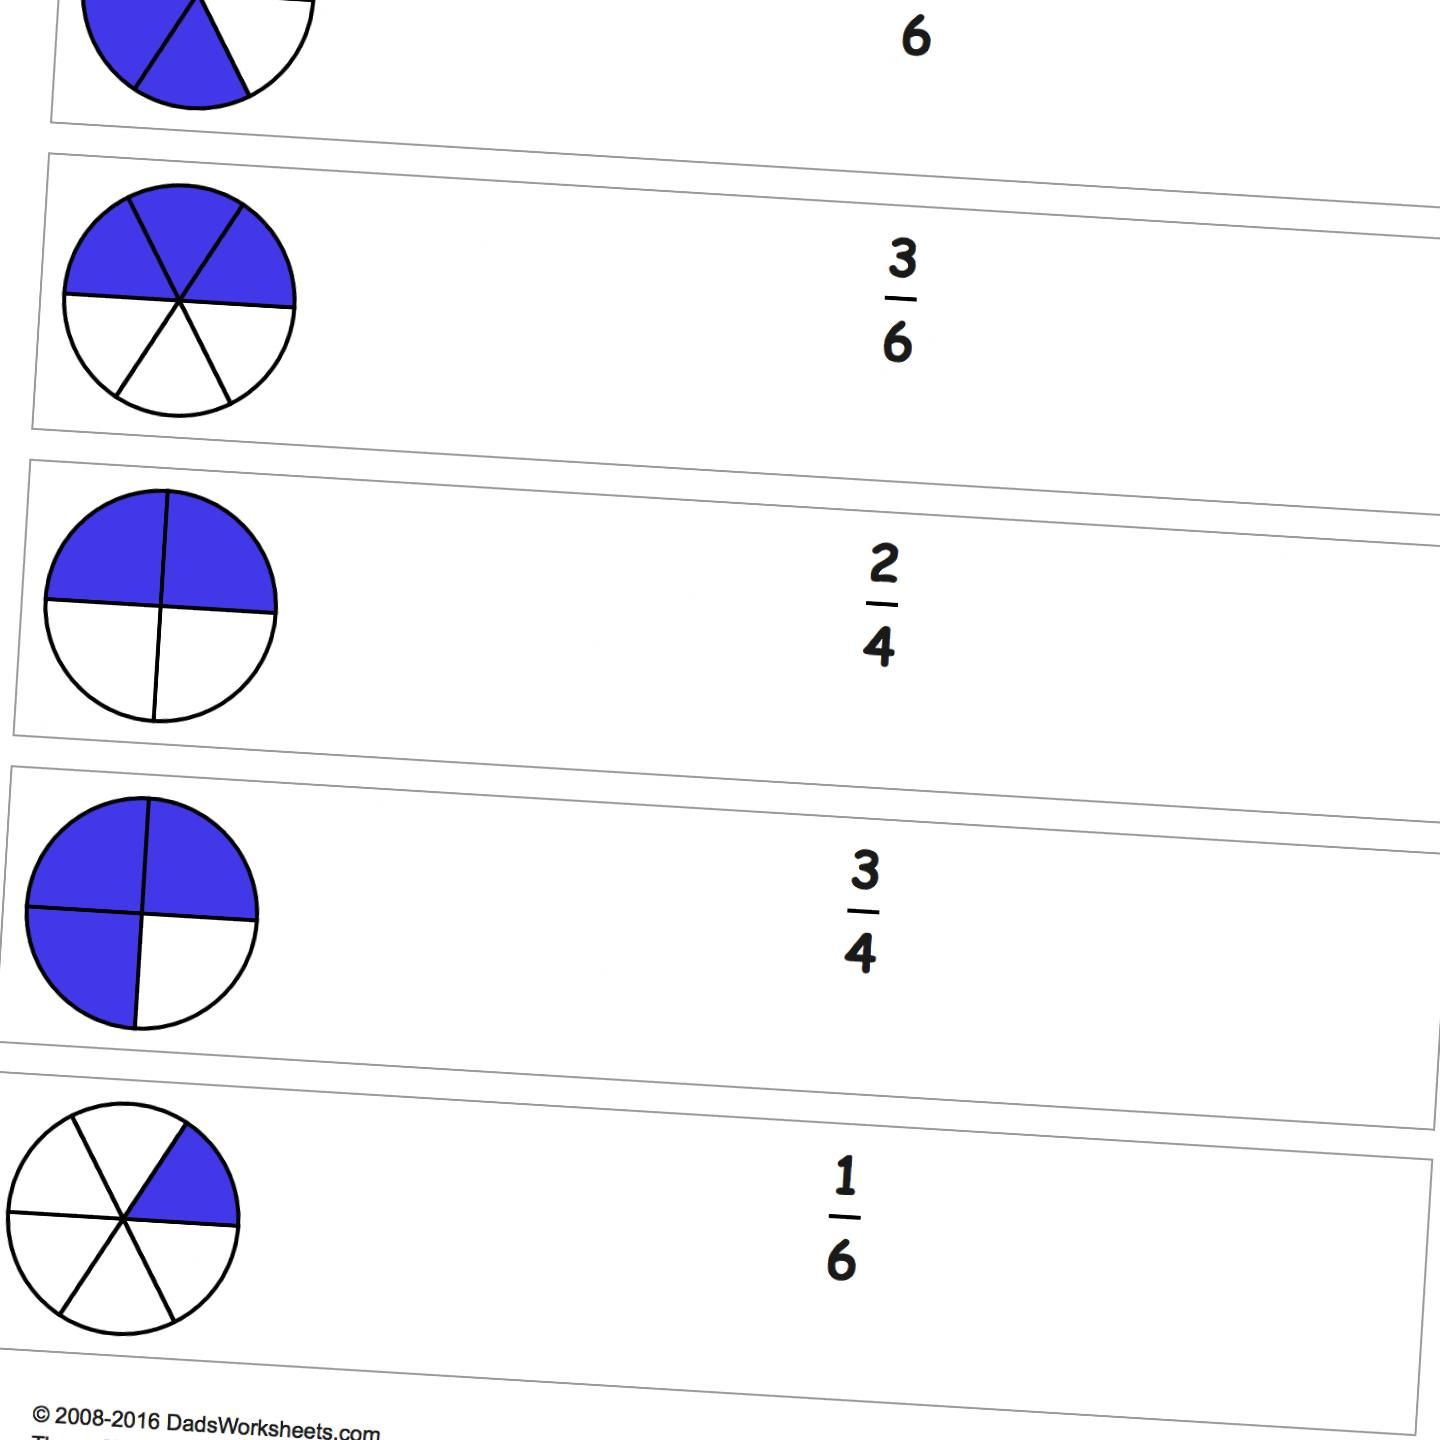 These Exercises Create Familiarity With Fraction Concepts